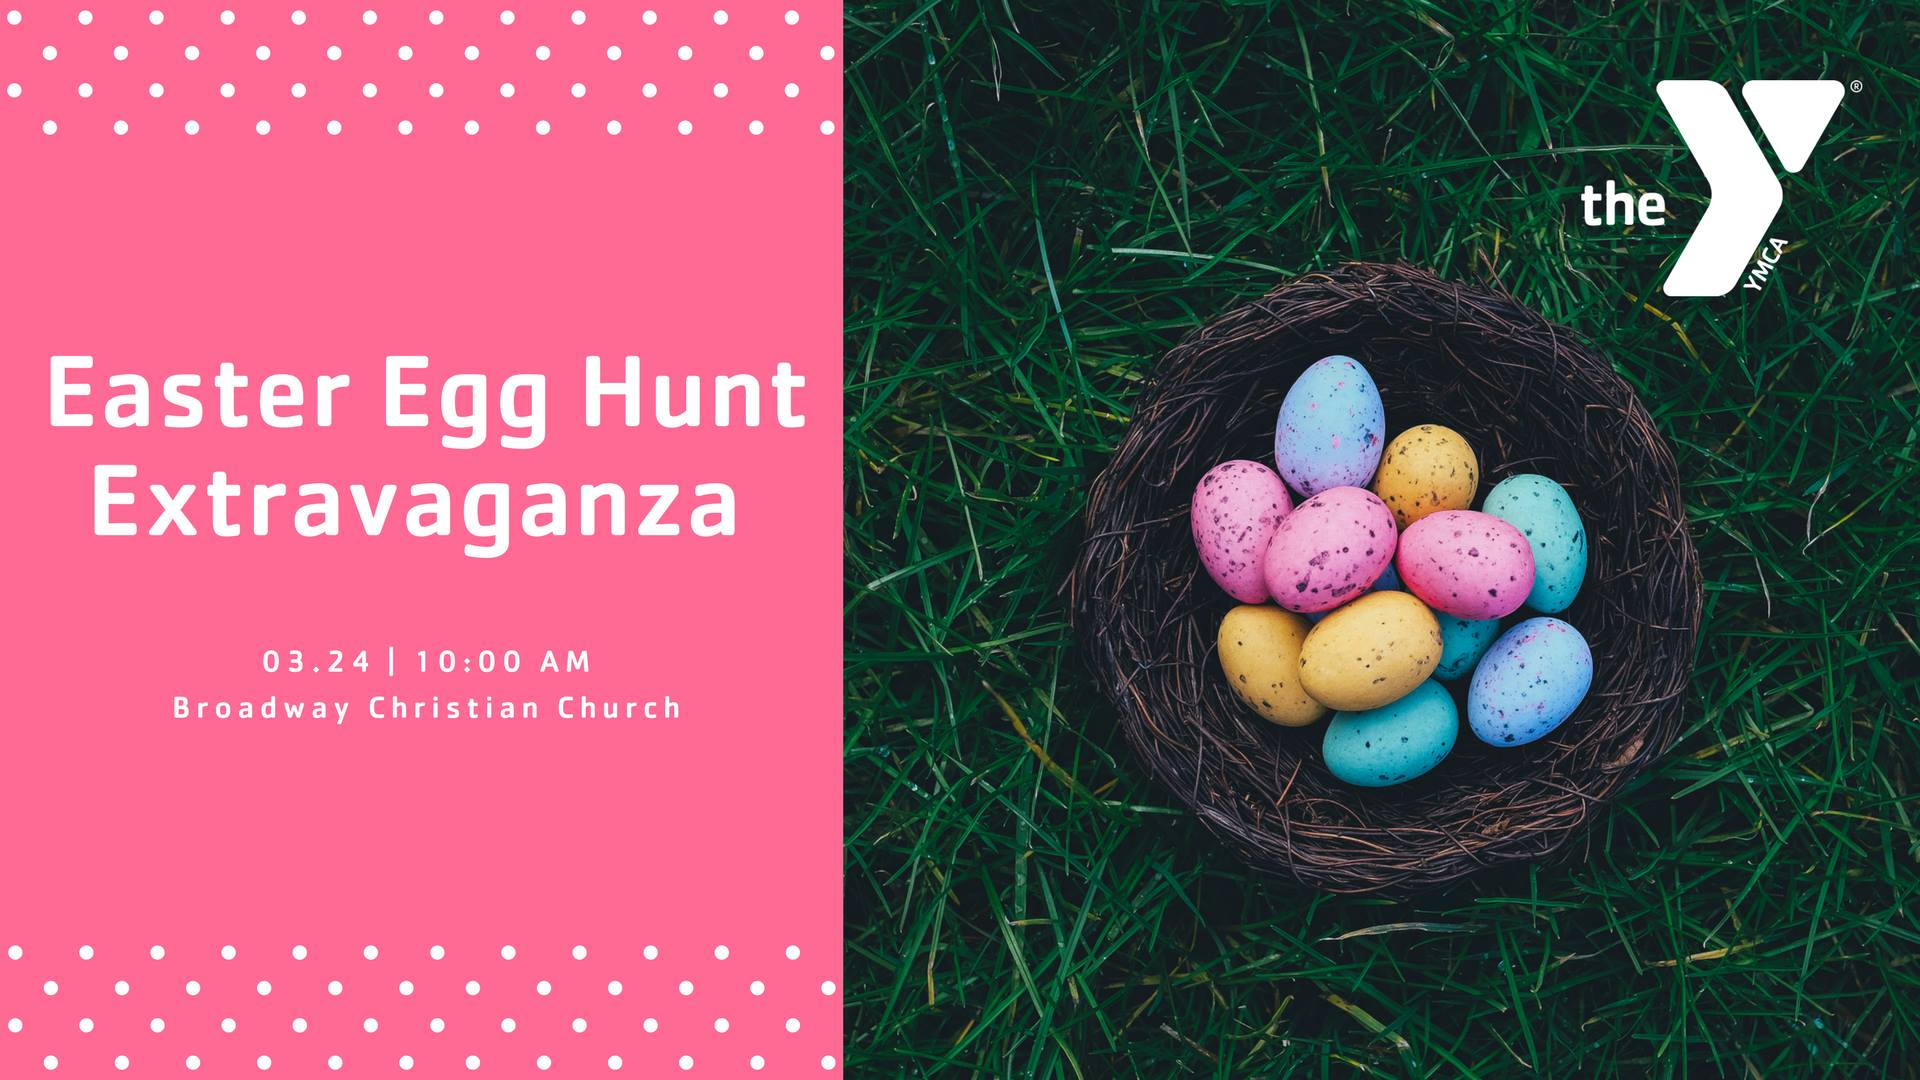 Mattoon YMCA Easter Egg Hunt